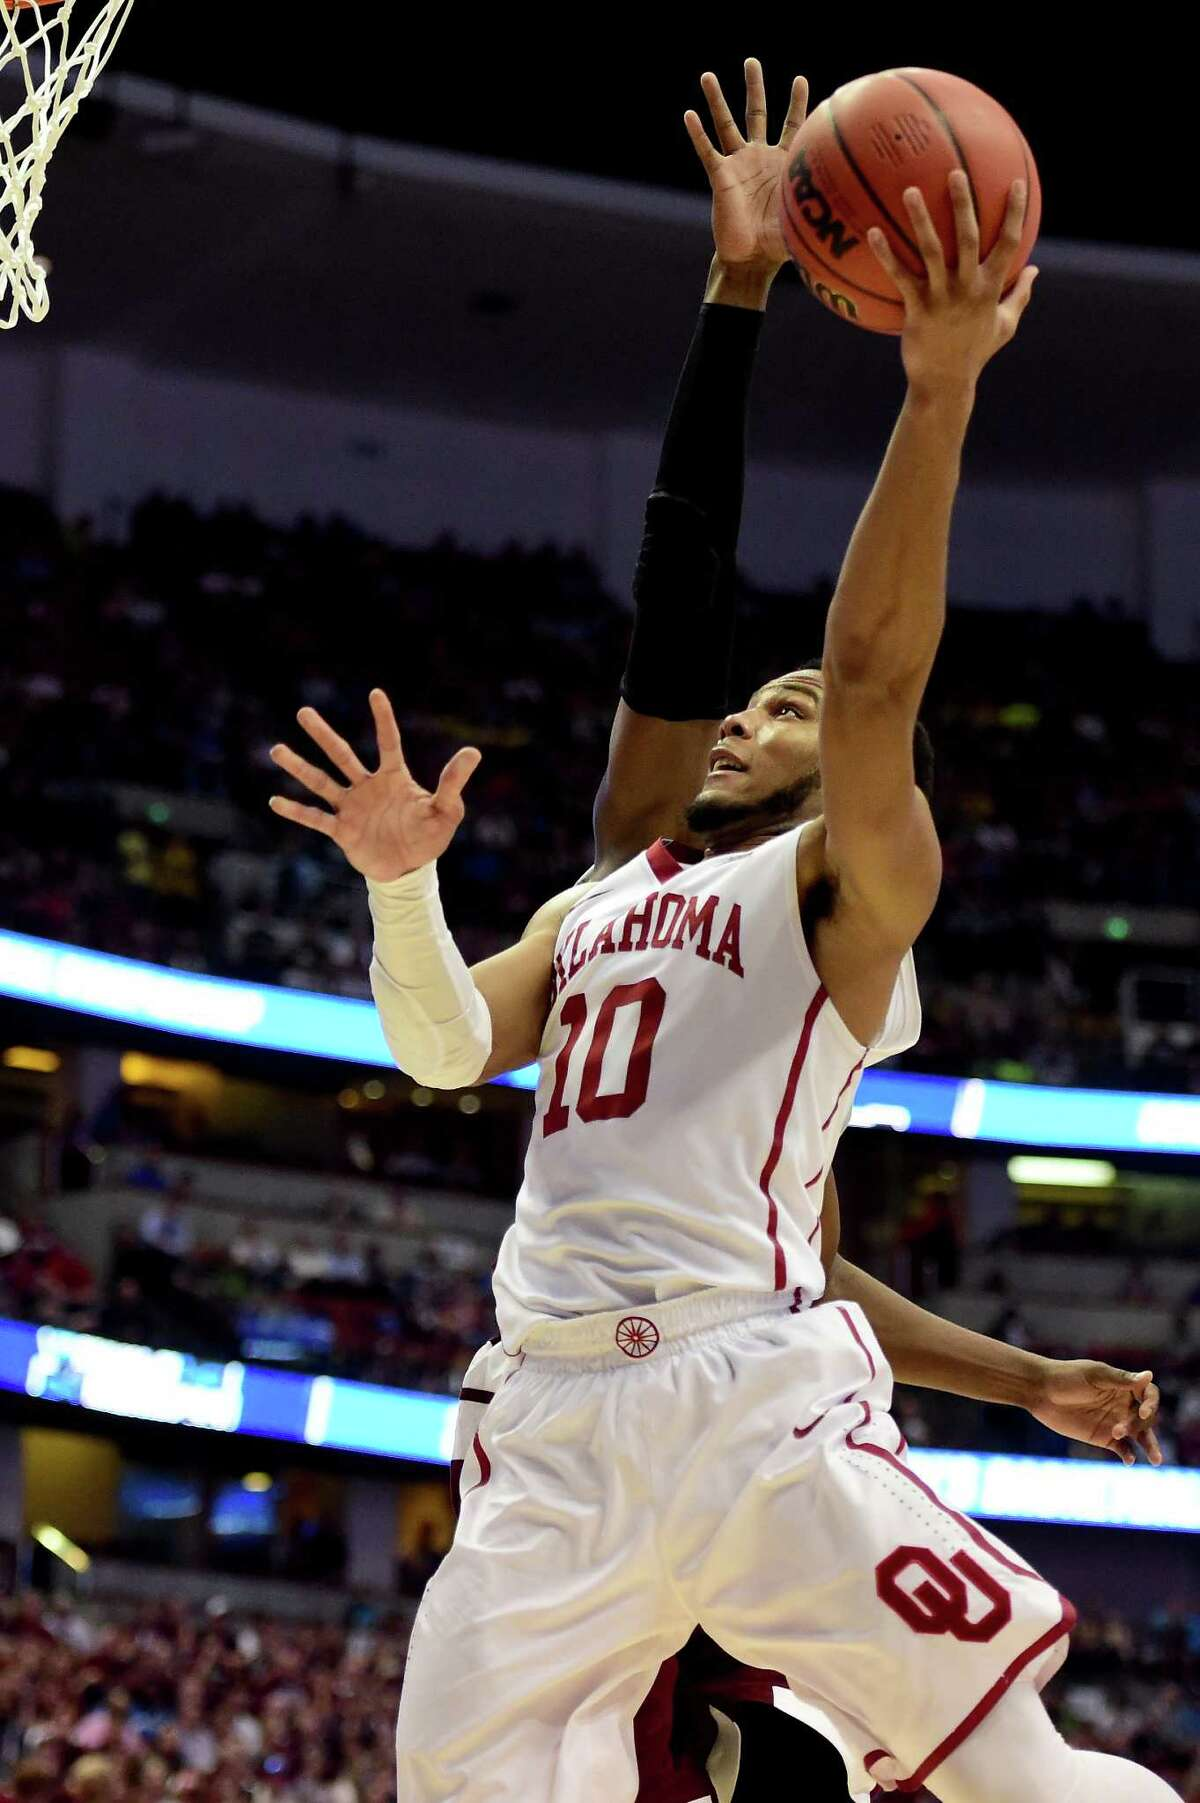 ANAHEIM, CA - MARCH 24: Jordan Woodard #10 of the Oklahoma Sooners lays the ball up against the Texas A&M Aggies in the second half in the 2016 NCAA Men's Basketball Tournament West Regional at the Honda Center on March 24, 2016 in Anaheim, California.